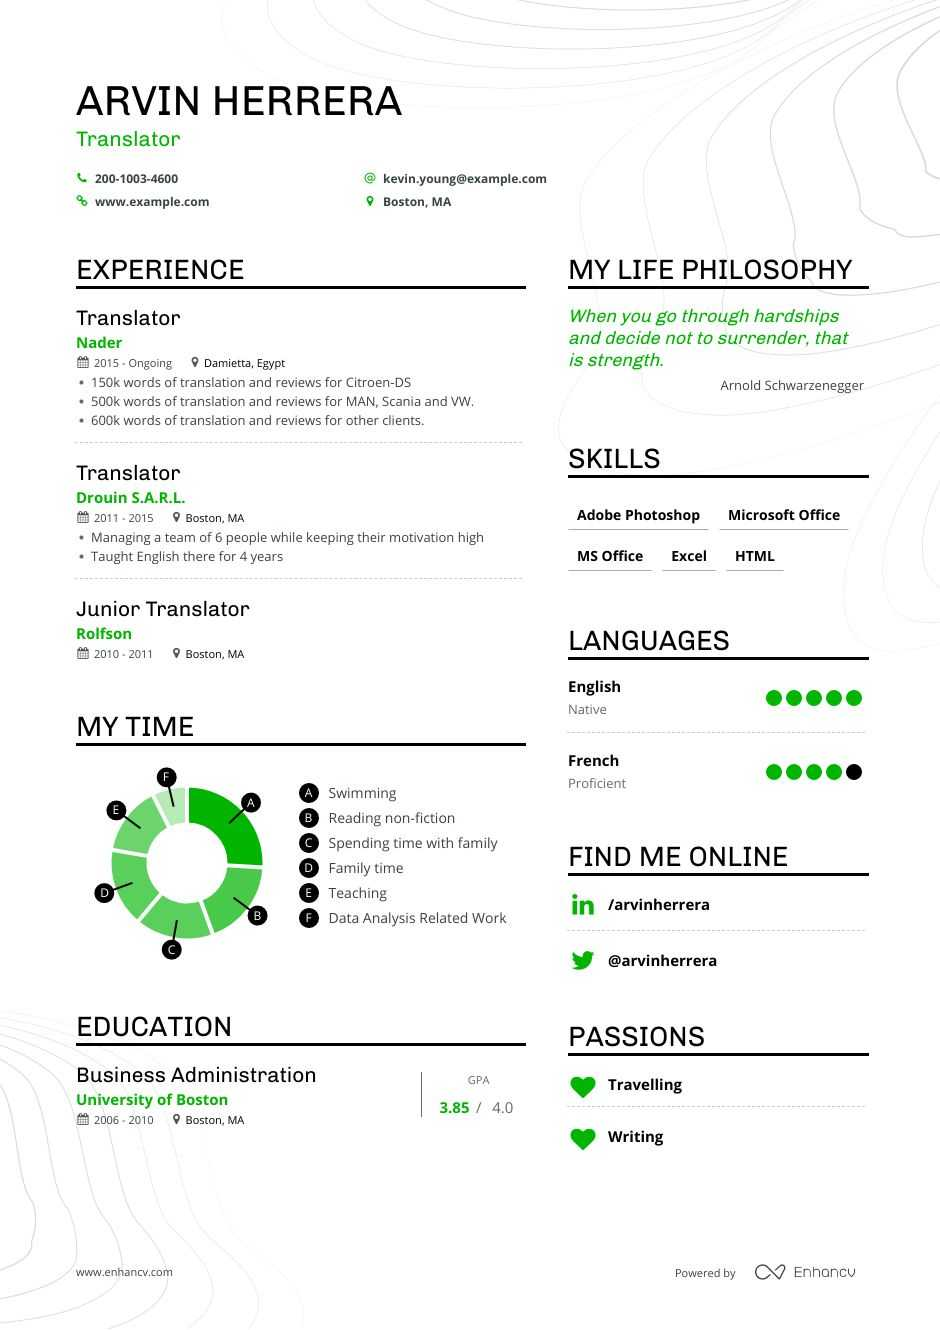 translator resume examples guide pro tips enhancv for job suggestions skills modern Resume Resume For Translator Job